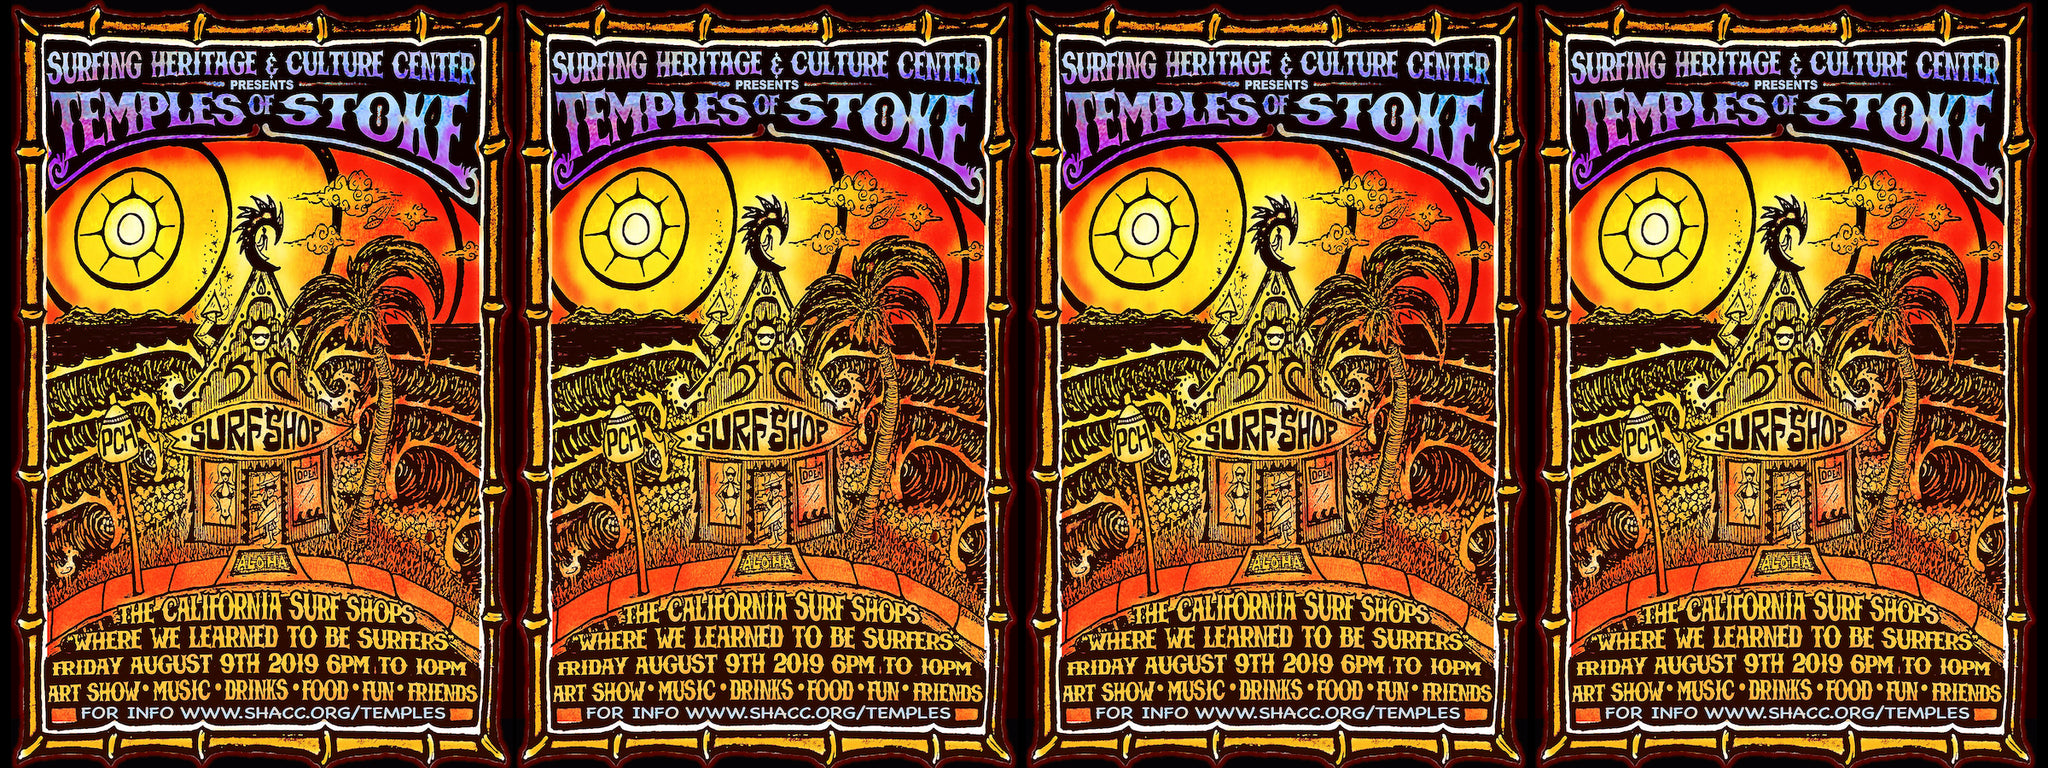 Temples of Stoke at Surfing Heritage and Culture Center